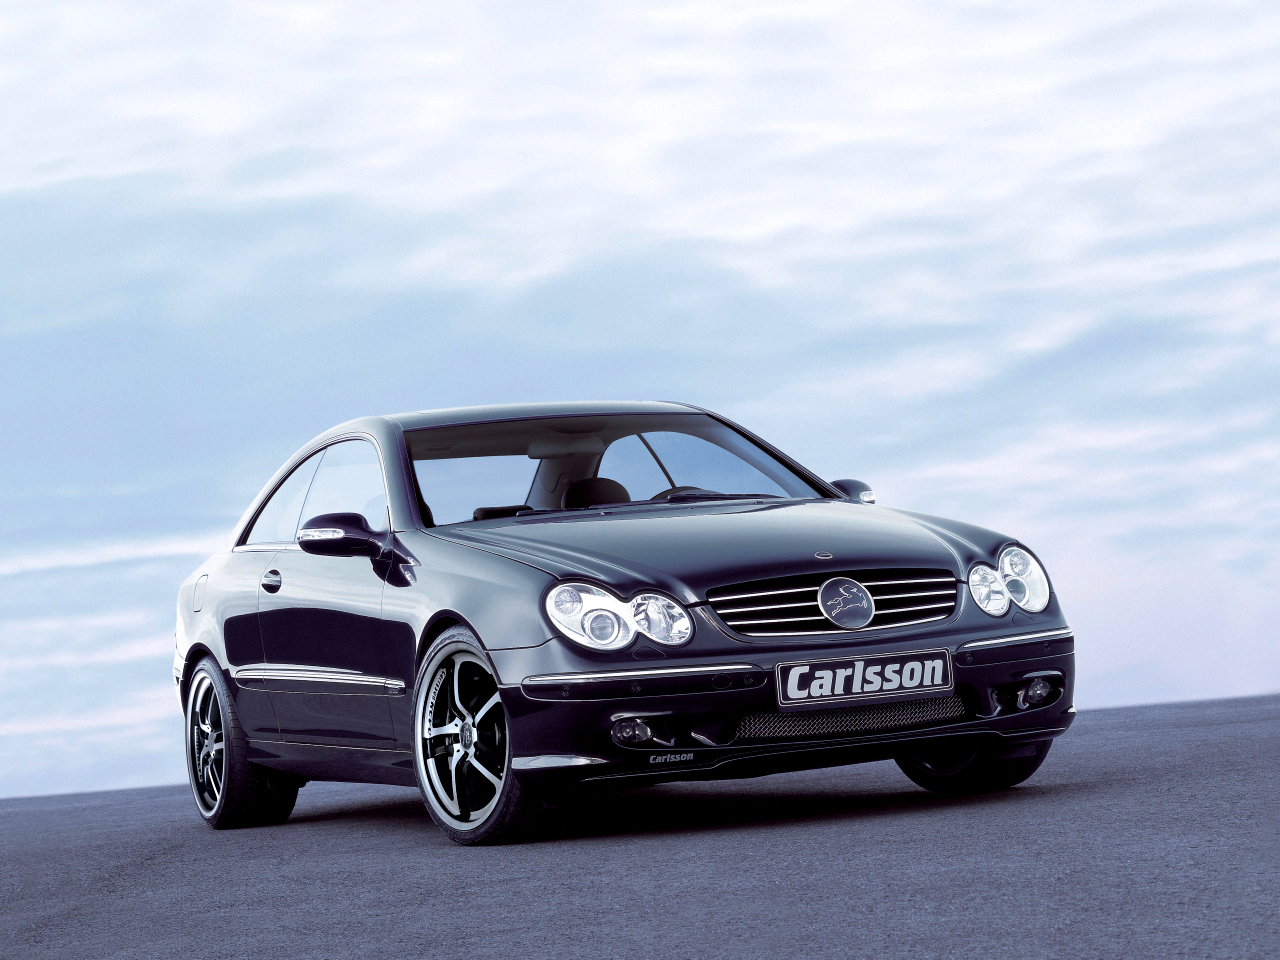 Carlsson Revo 1/5  mounted to the Mercedes CLK-class